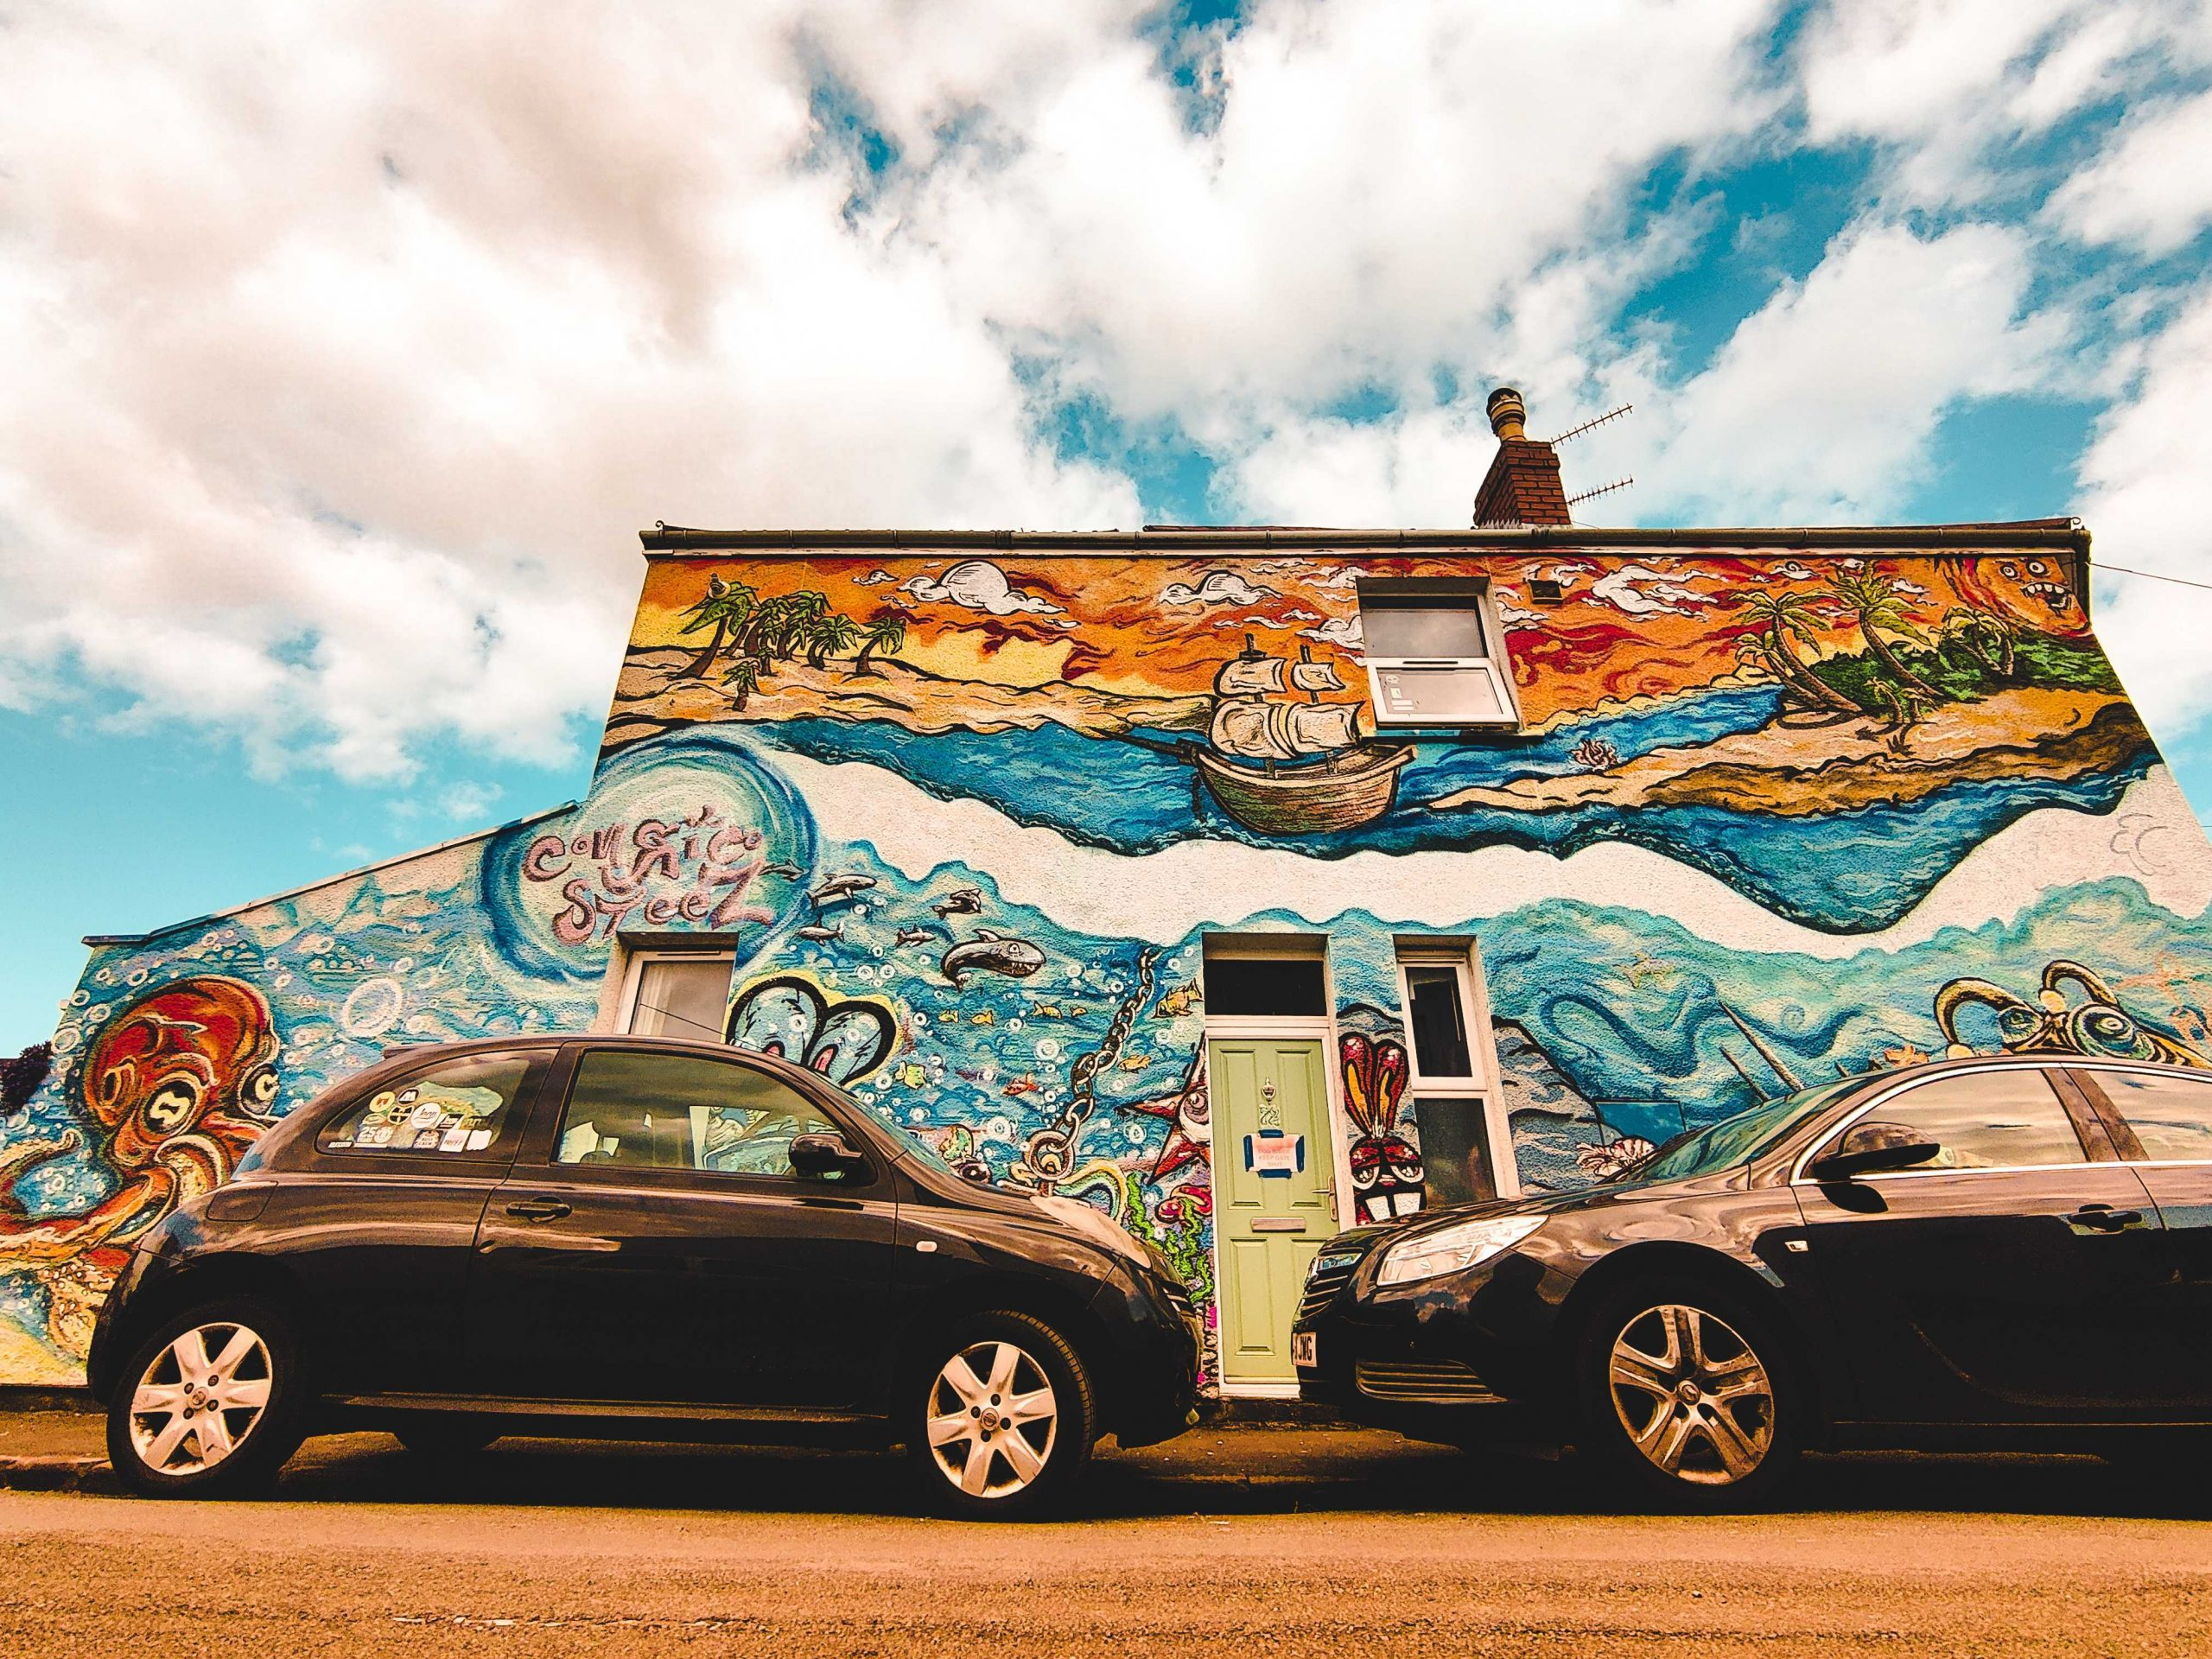 Lucas' submission to the Great British Photography Challenge shows the side of a house that's been painted to show a beach scene. The scene includes the sea, palm trees, an octopus and a pirate ship.